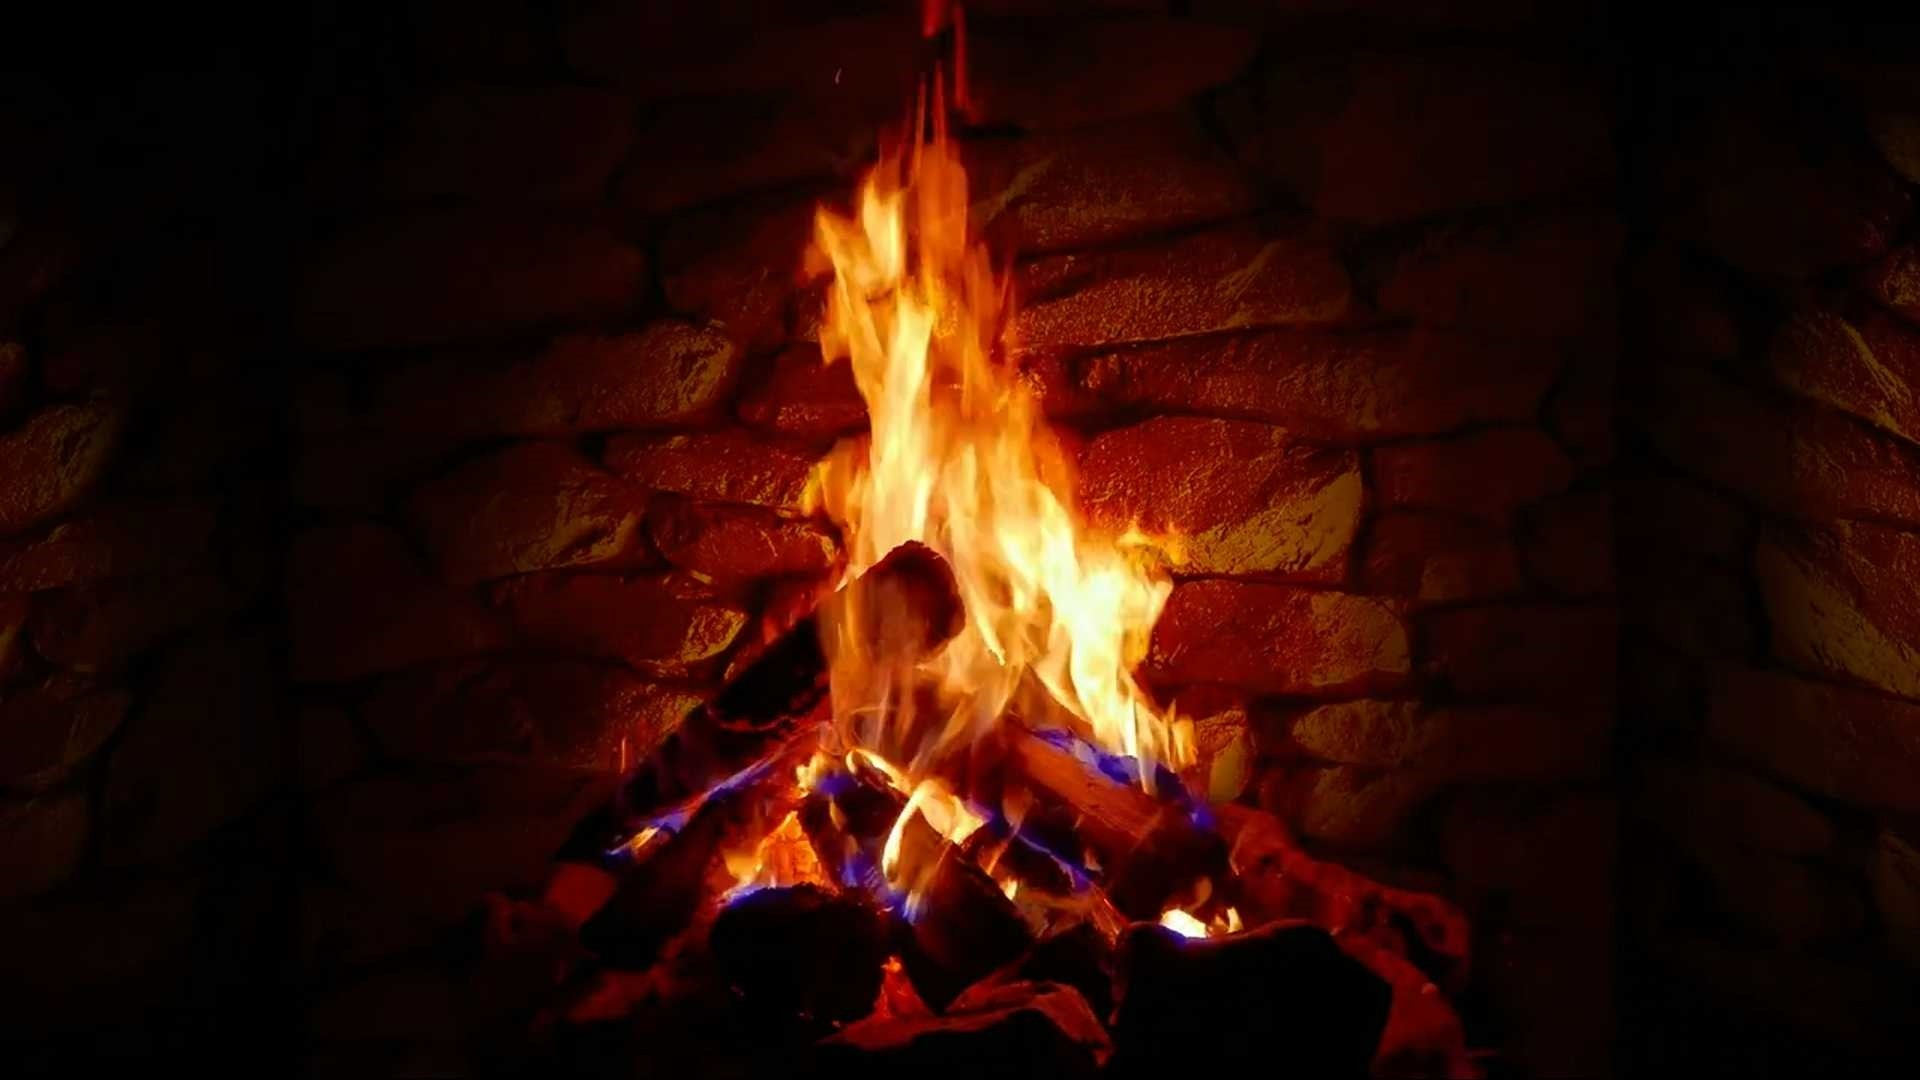 Fireplace Wallpaper Picture hd